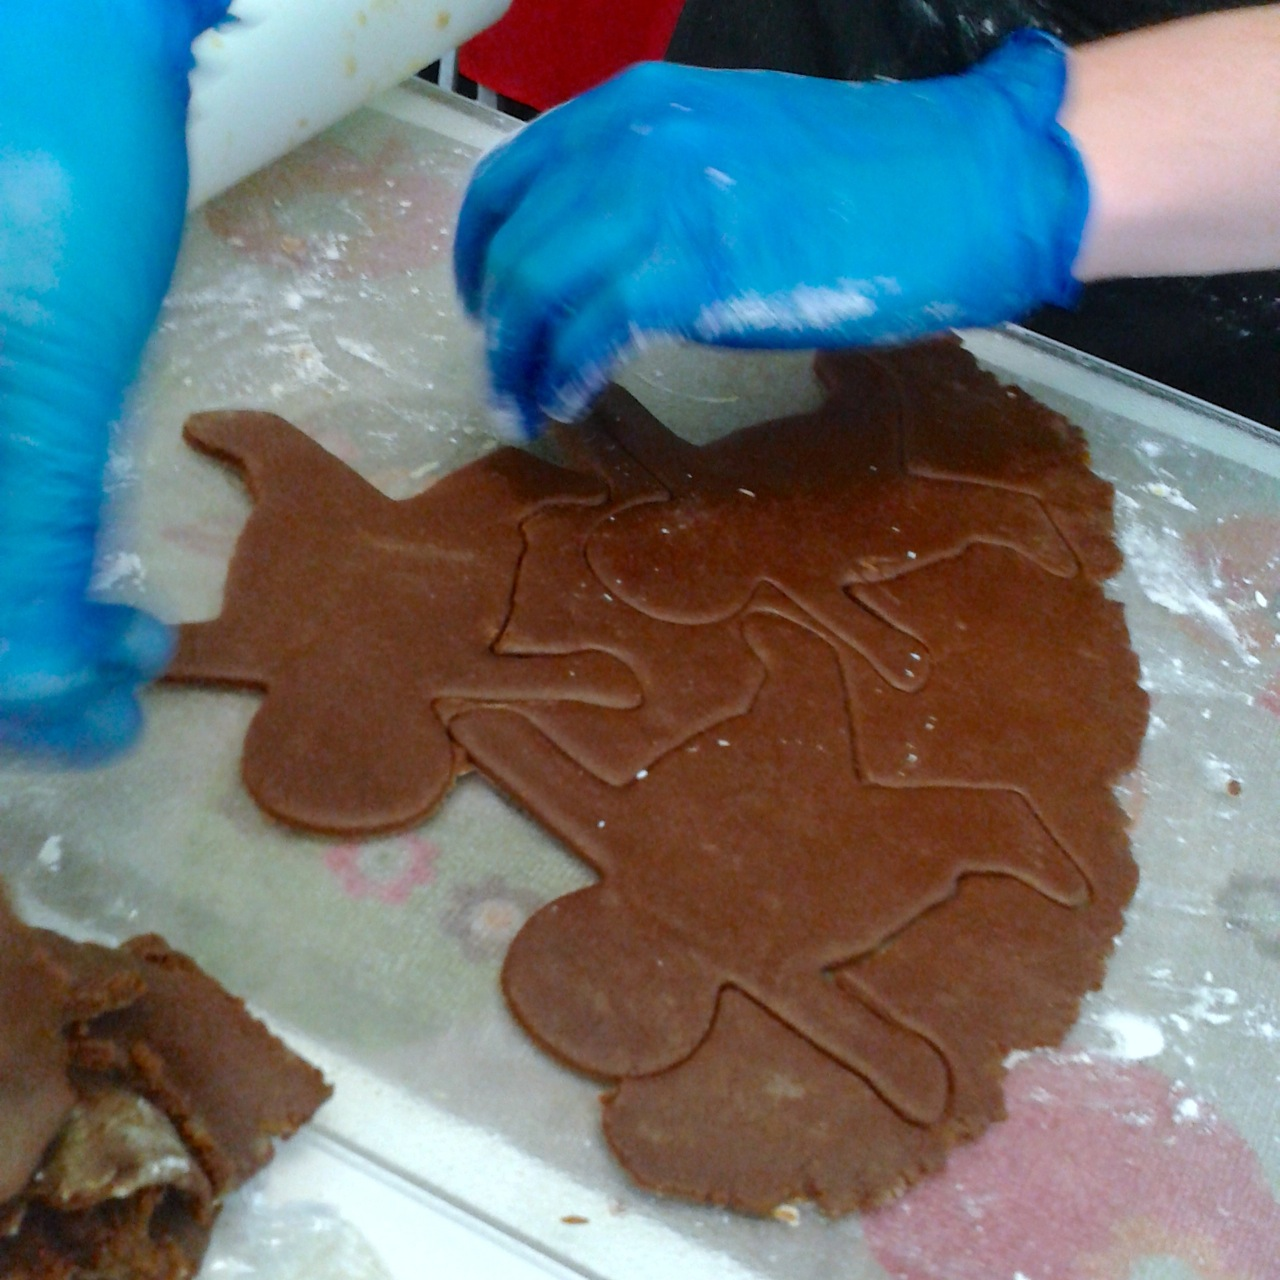 http://i0.wp.com/fatgayvegan.com/wp-content/uploads/2014/12/gingerbread.jpg?fit=1280%2C1280